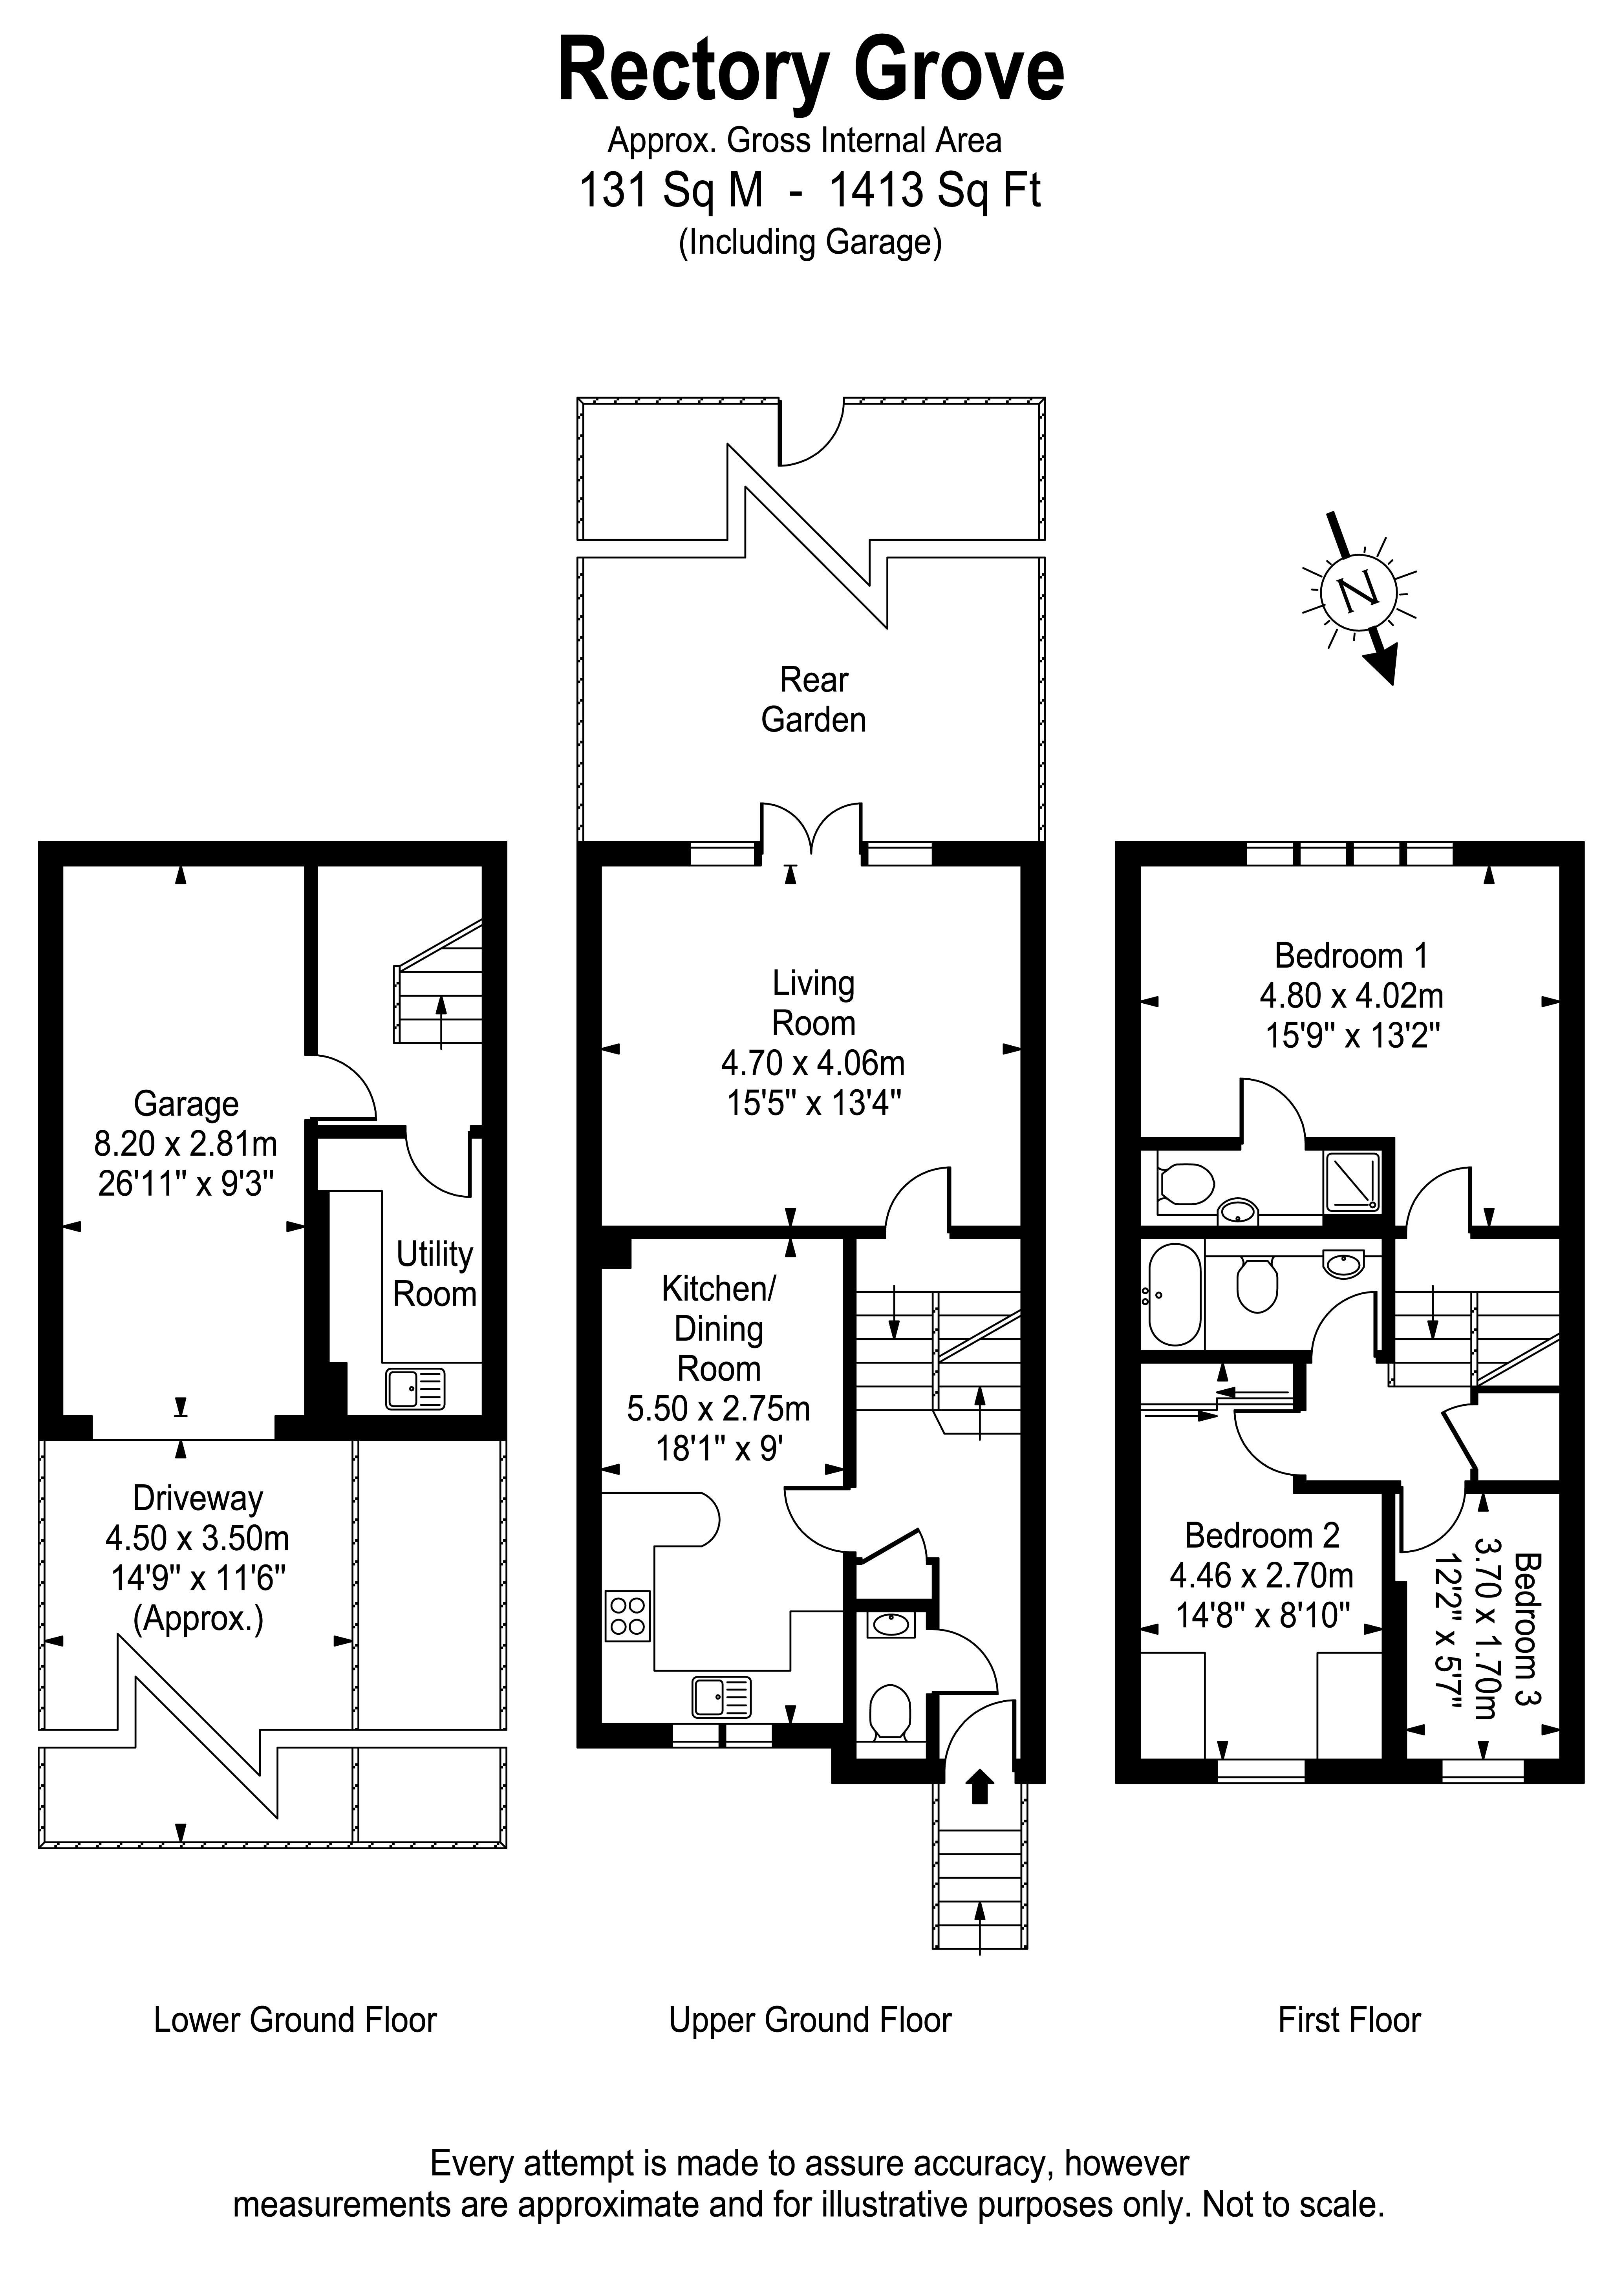 Floorplans For Rectory Grove, Hampton